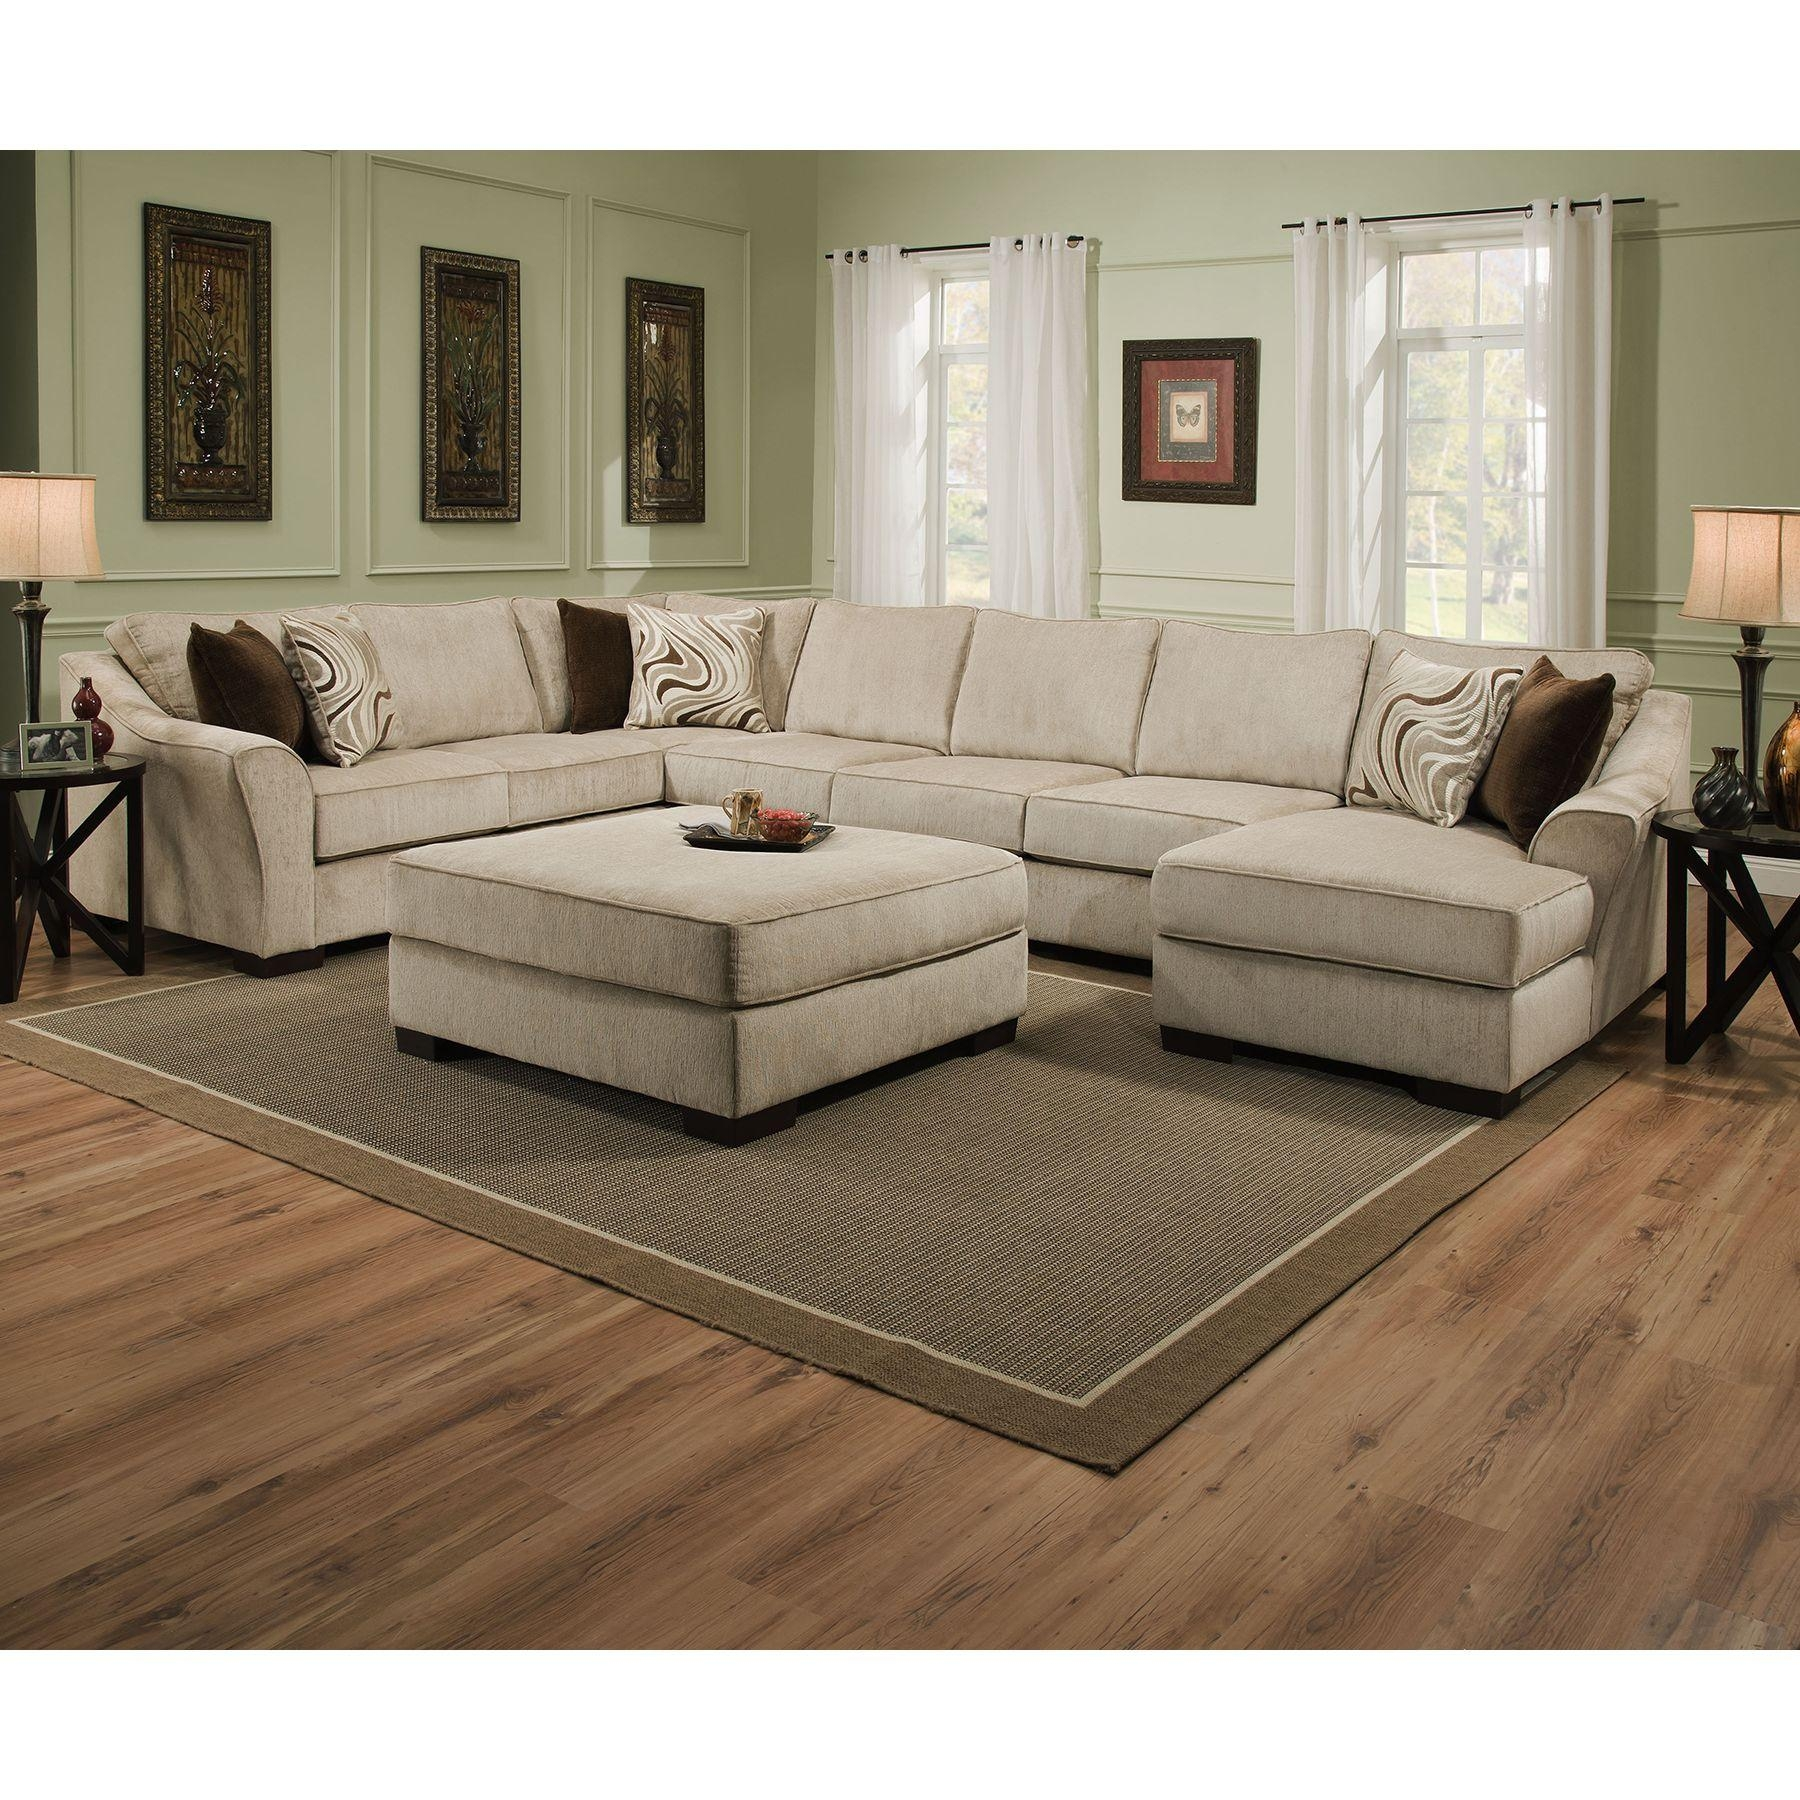 Large Sofas 20 Best Large Comfortable Sectional Sofas Sofa Ideas